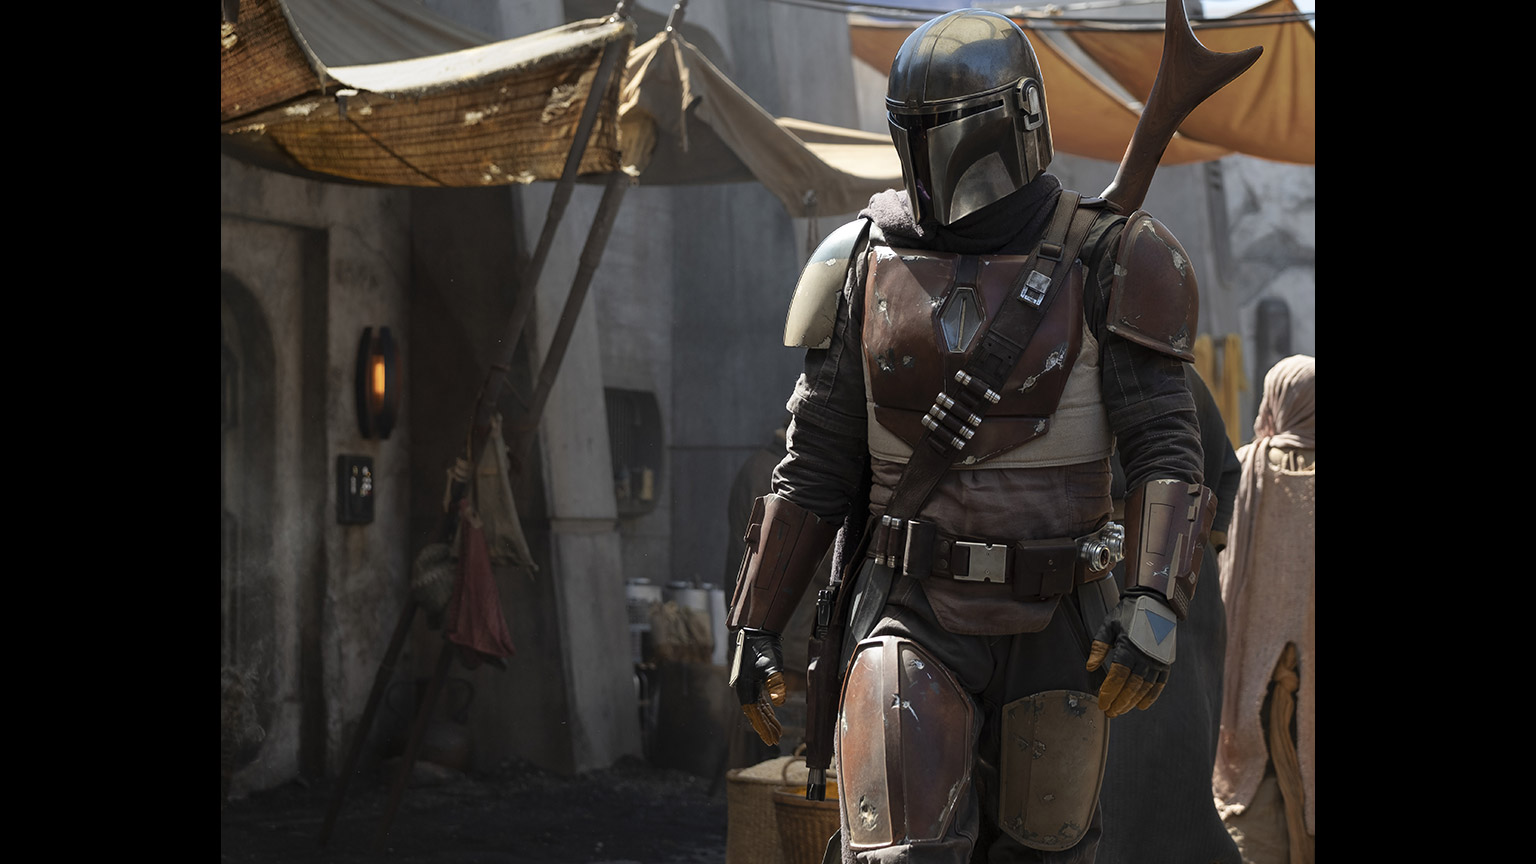 Mandalorian Meet and Greet